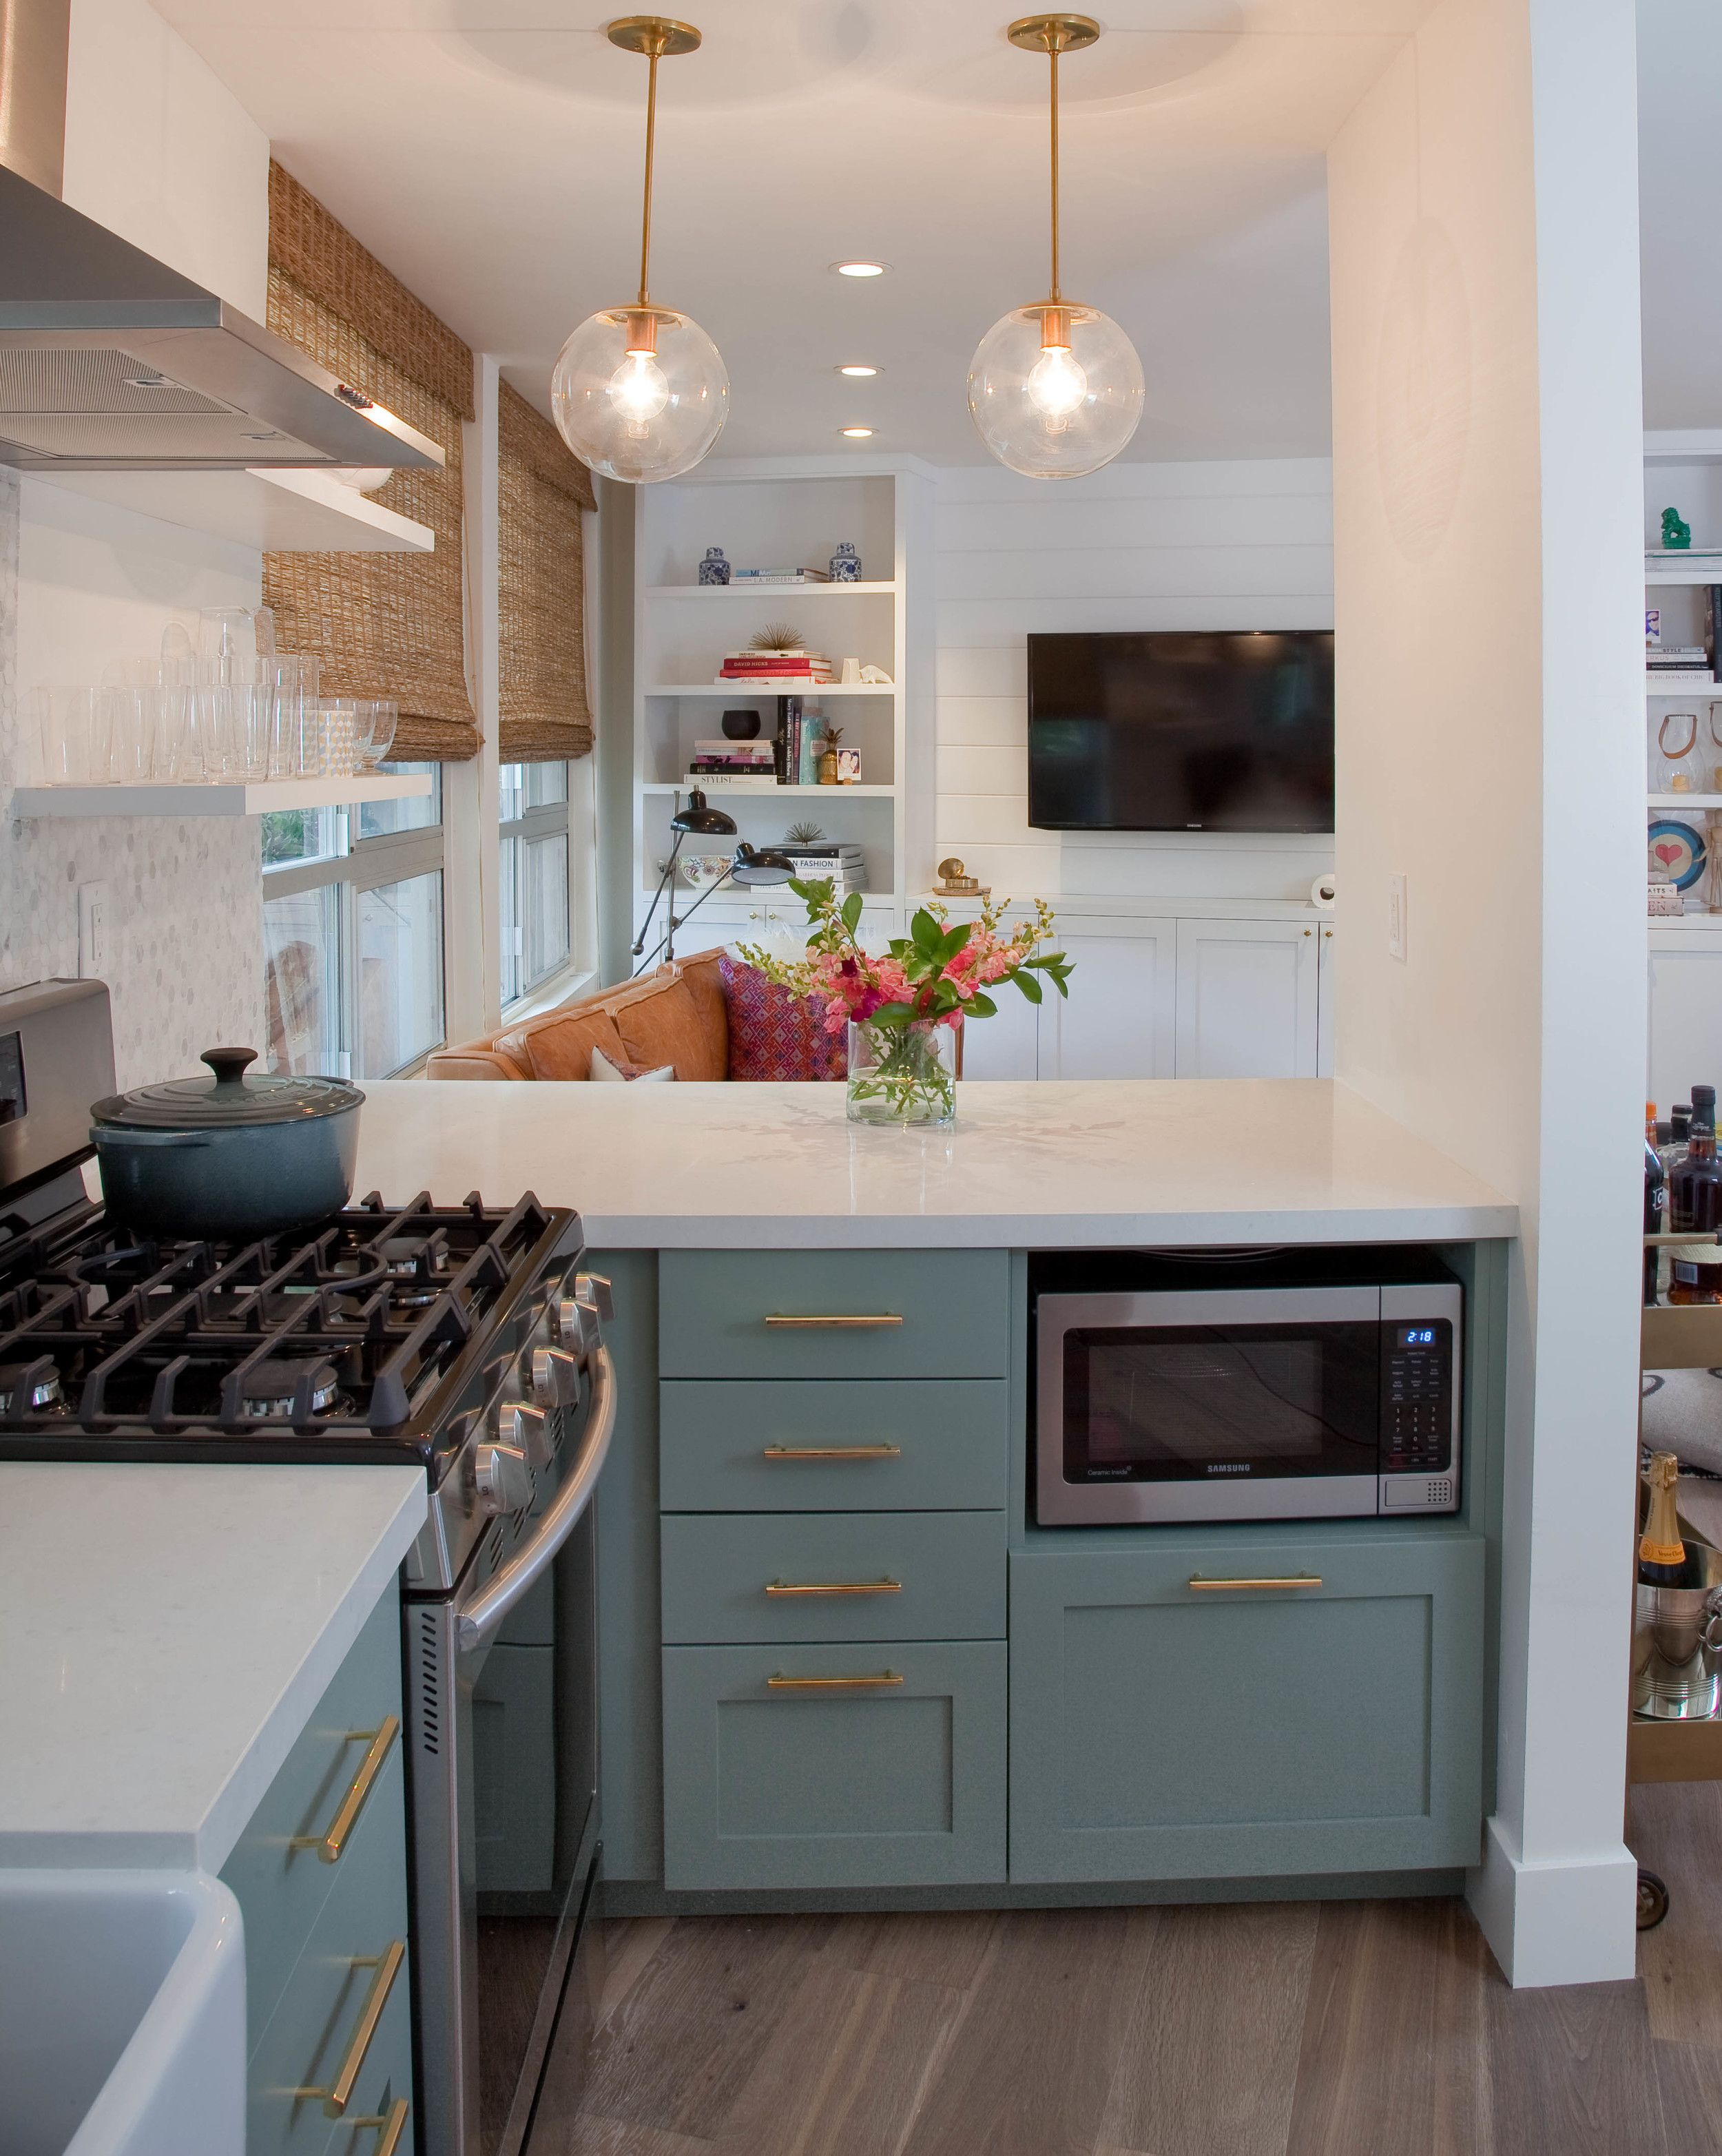 green white and brass kitchen remodel kitchen remodel small condo kitchen remodel diy on kitchen renovation id=48921